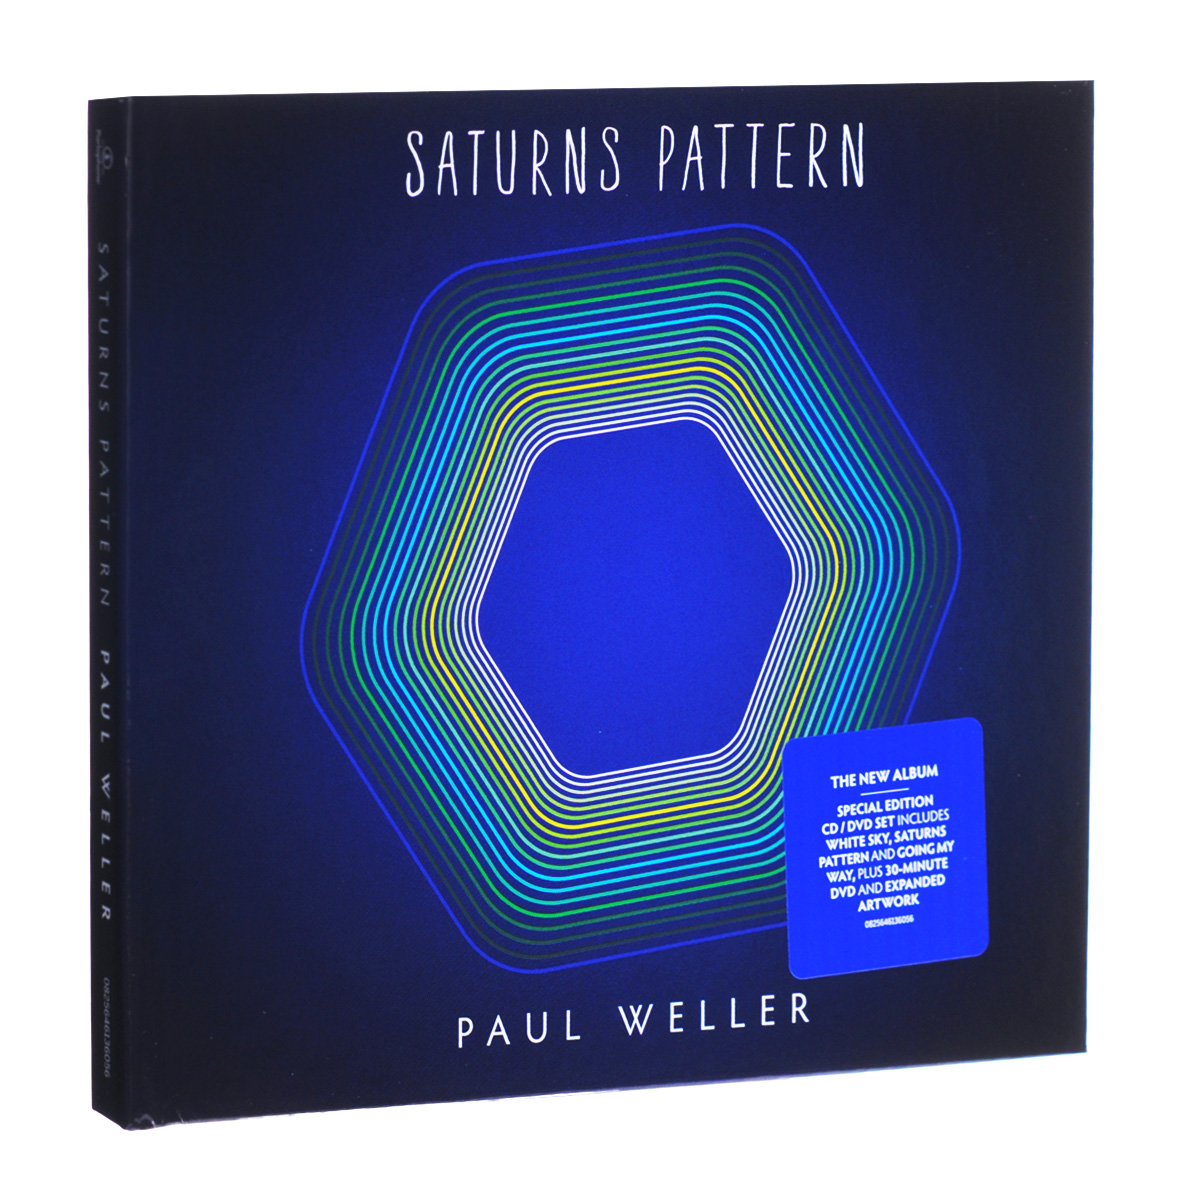 Пол Уэллер Paul Weller. Saturns Pattern (CD + DVD) stylish digital camouflage pattern 5cm width coffee color tie for men